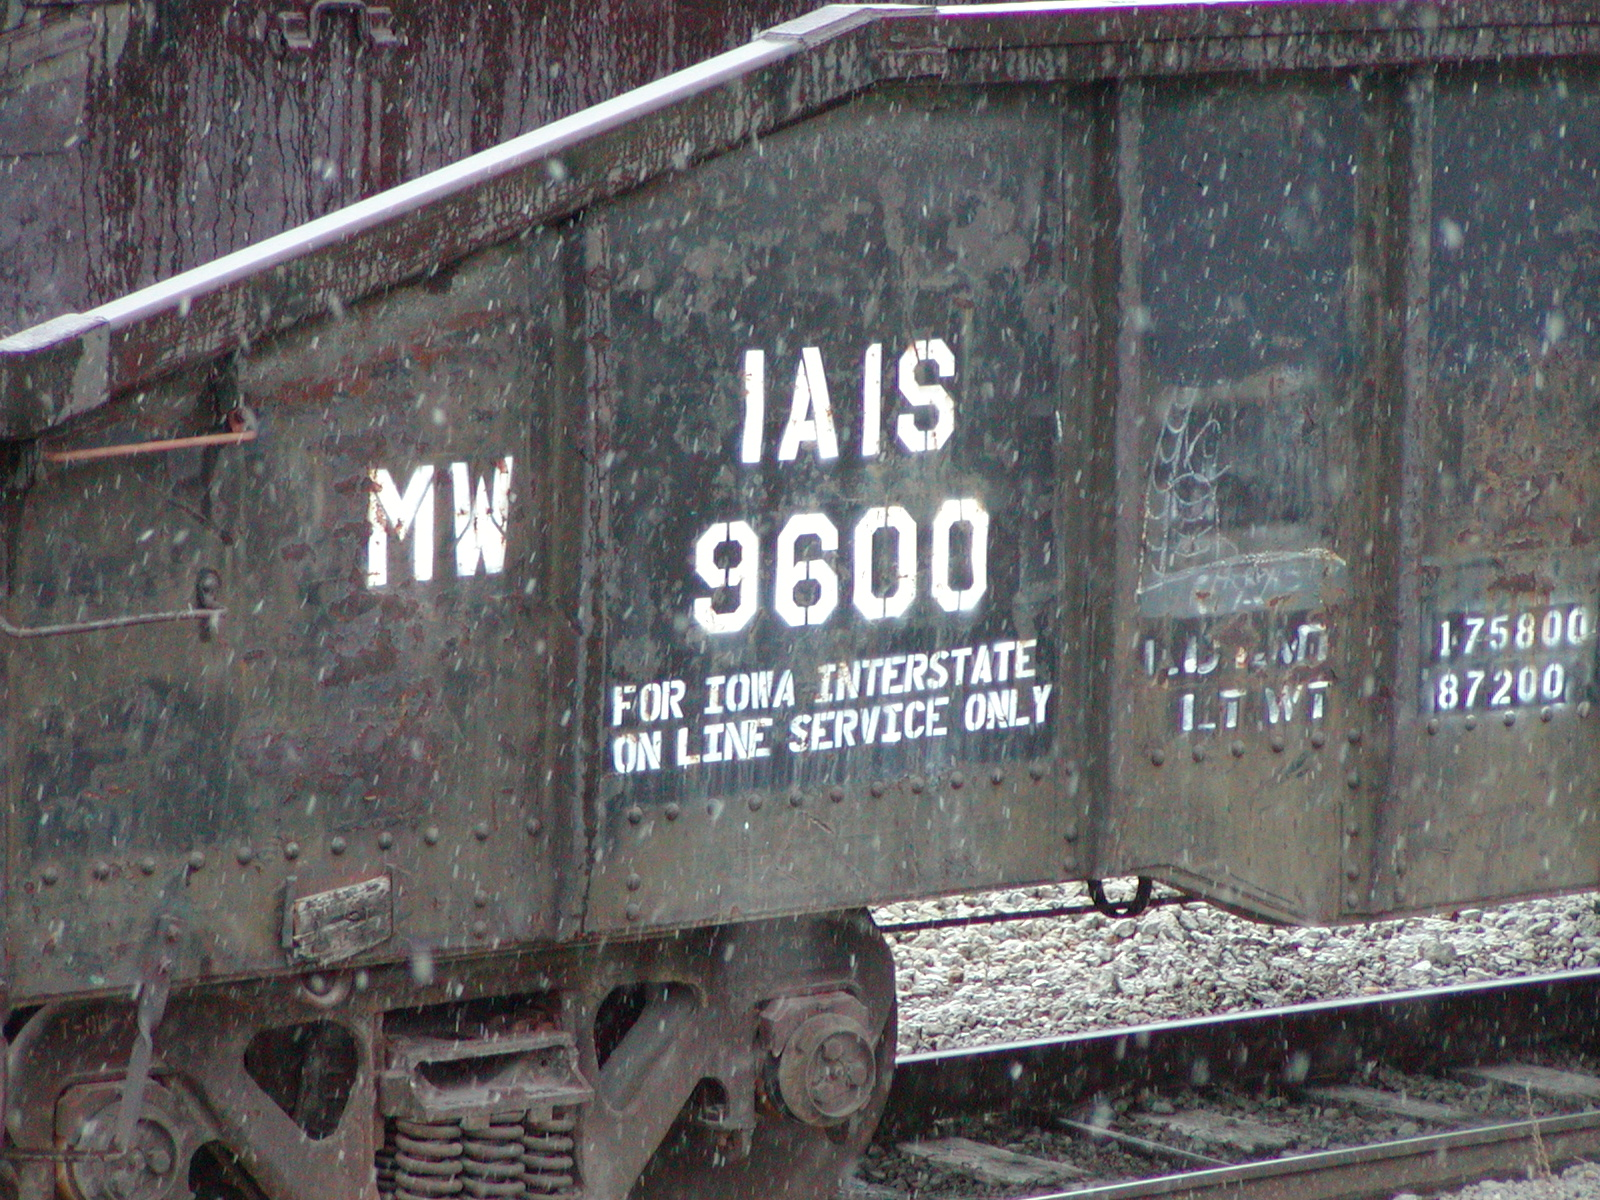 IAIS 9600 at Council Bluffs, IA, on 23-Oct-2002